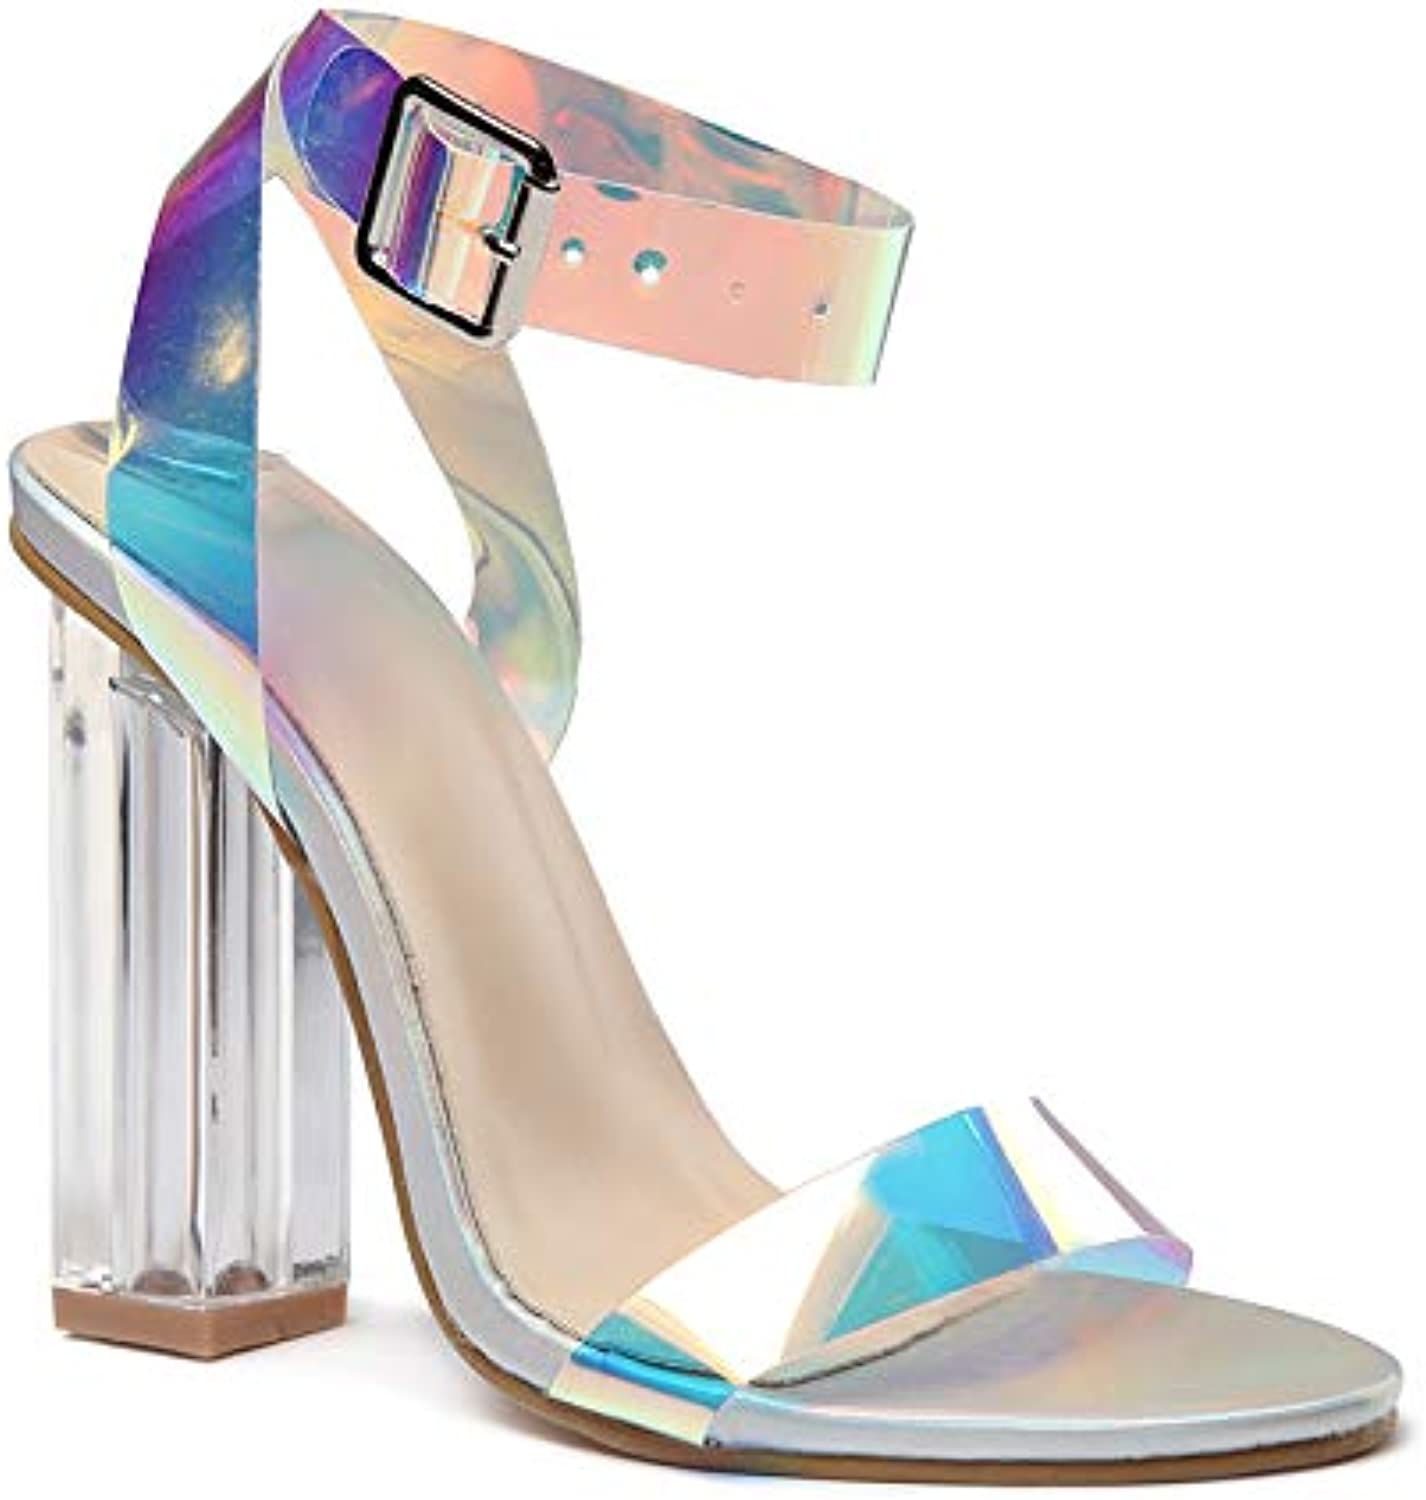 Women's Clear Strappy Block Chunky High Heel Open Toe Sandal Dress Sandal Party Pumps shoes